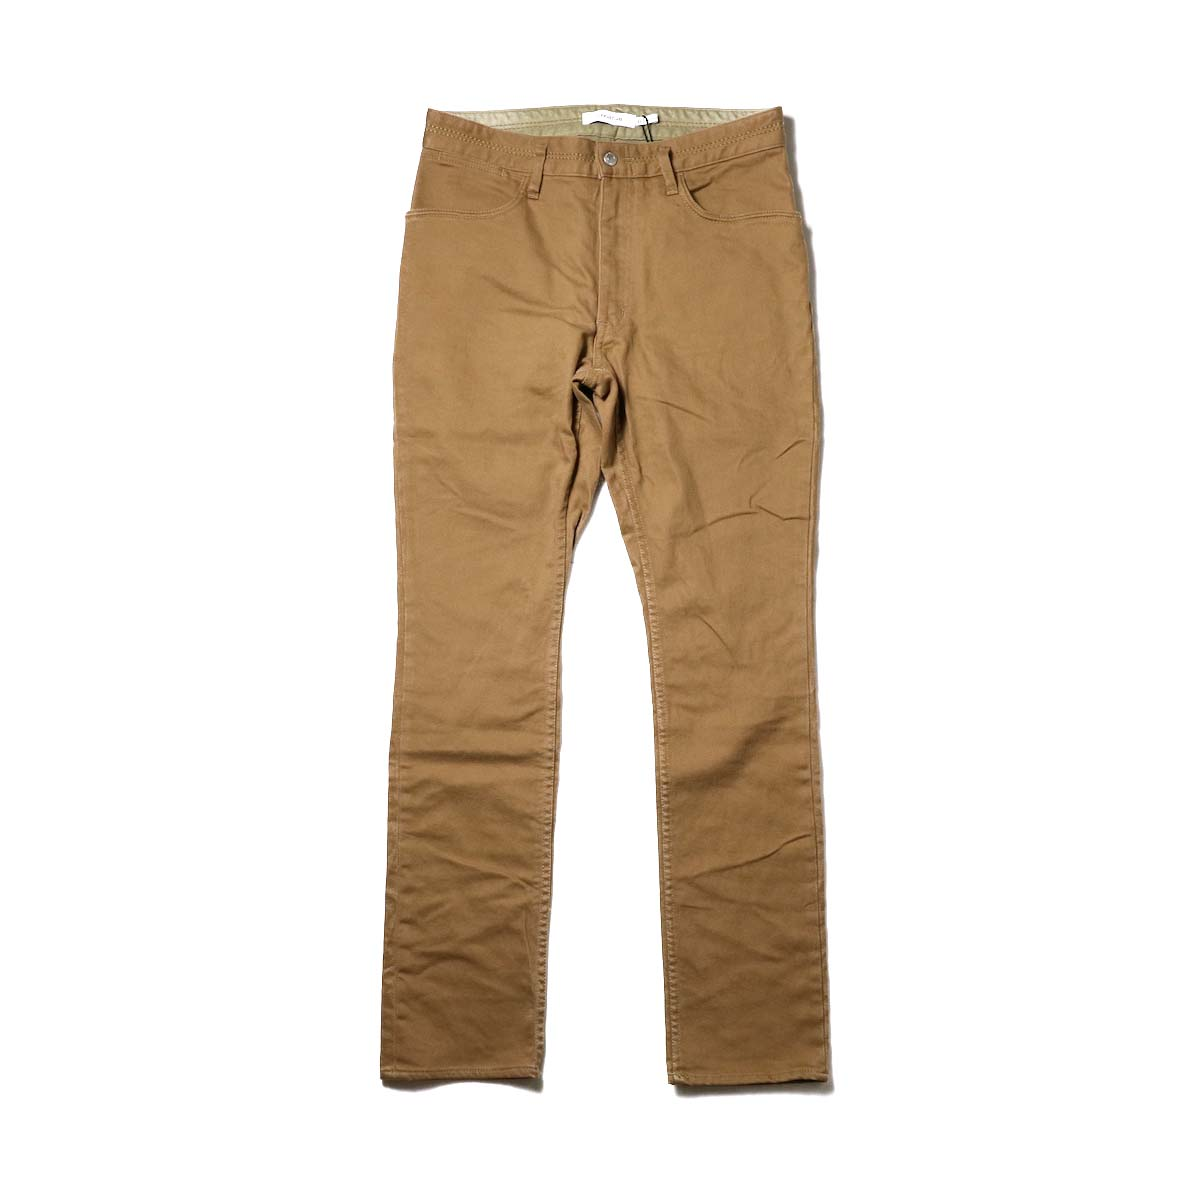 nonnative / DWELLER 5P JEANS DROPPED FIT C/P KATSURAGI STRETCH (Beige)